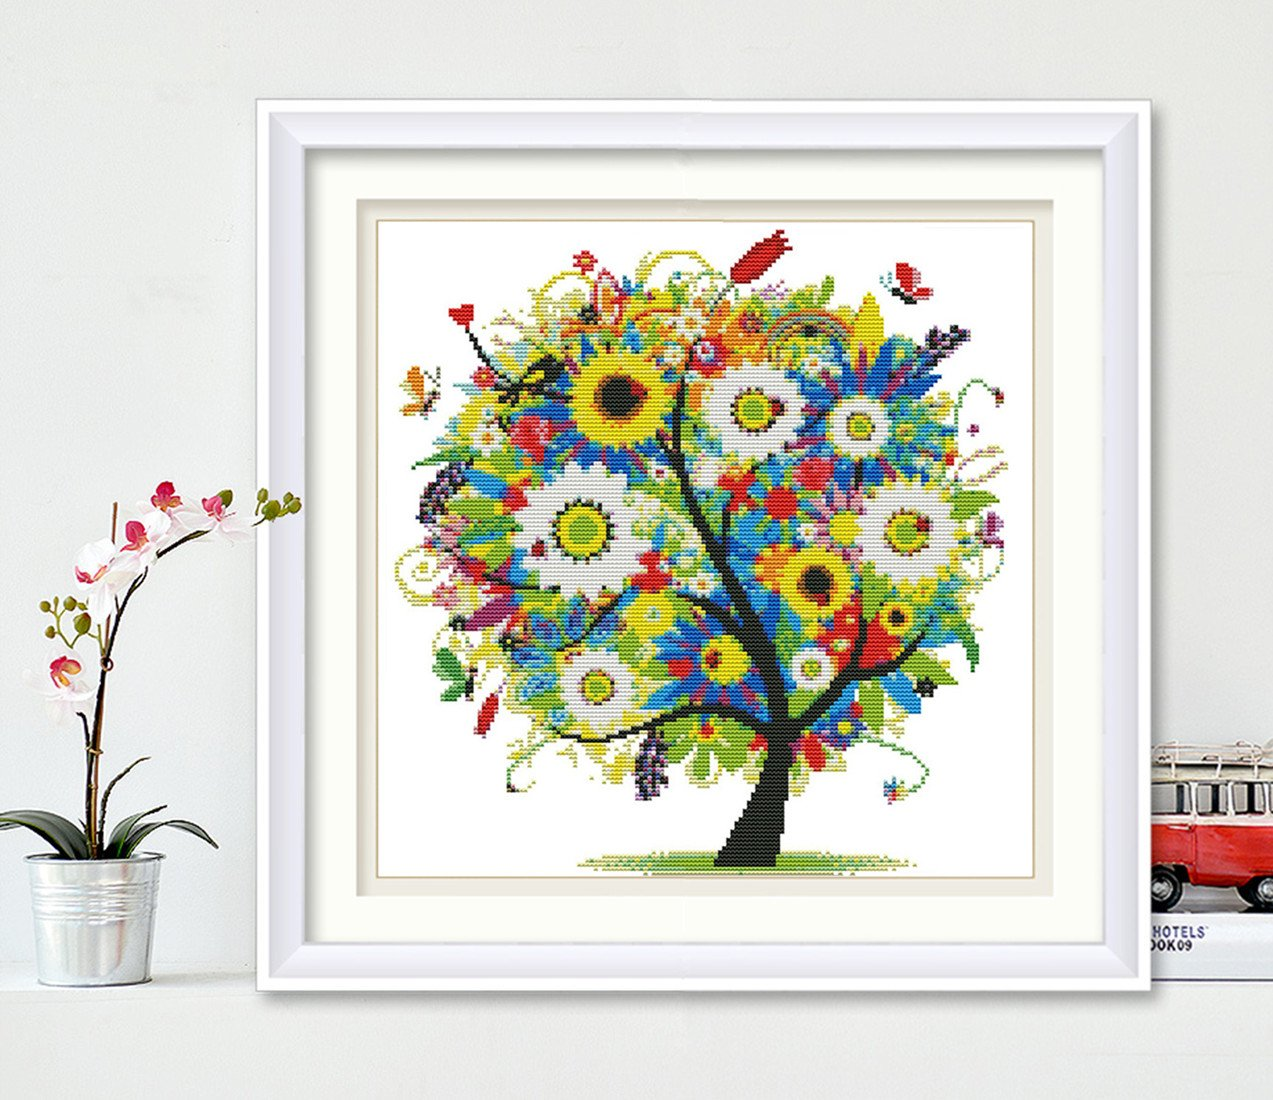 """Cross-Stitching DIY Needlework Happy Tree 11CT Fabric 18.1/"""" x 18.1/"""" Without Frame eGoodn Stamped Cross Stitch Embroidery Kits Printed Pattern"""